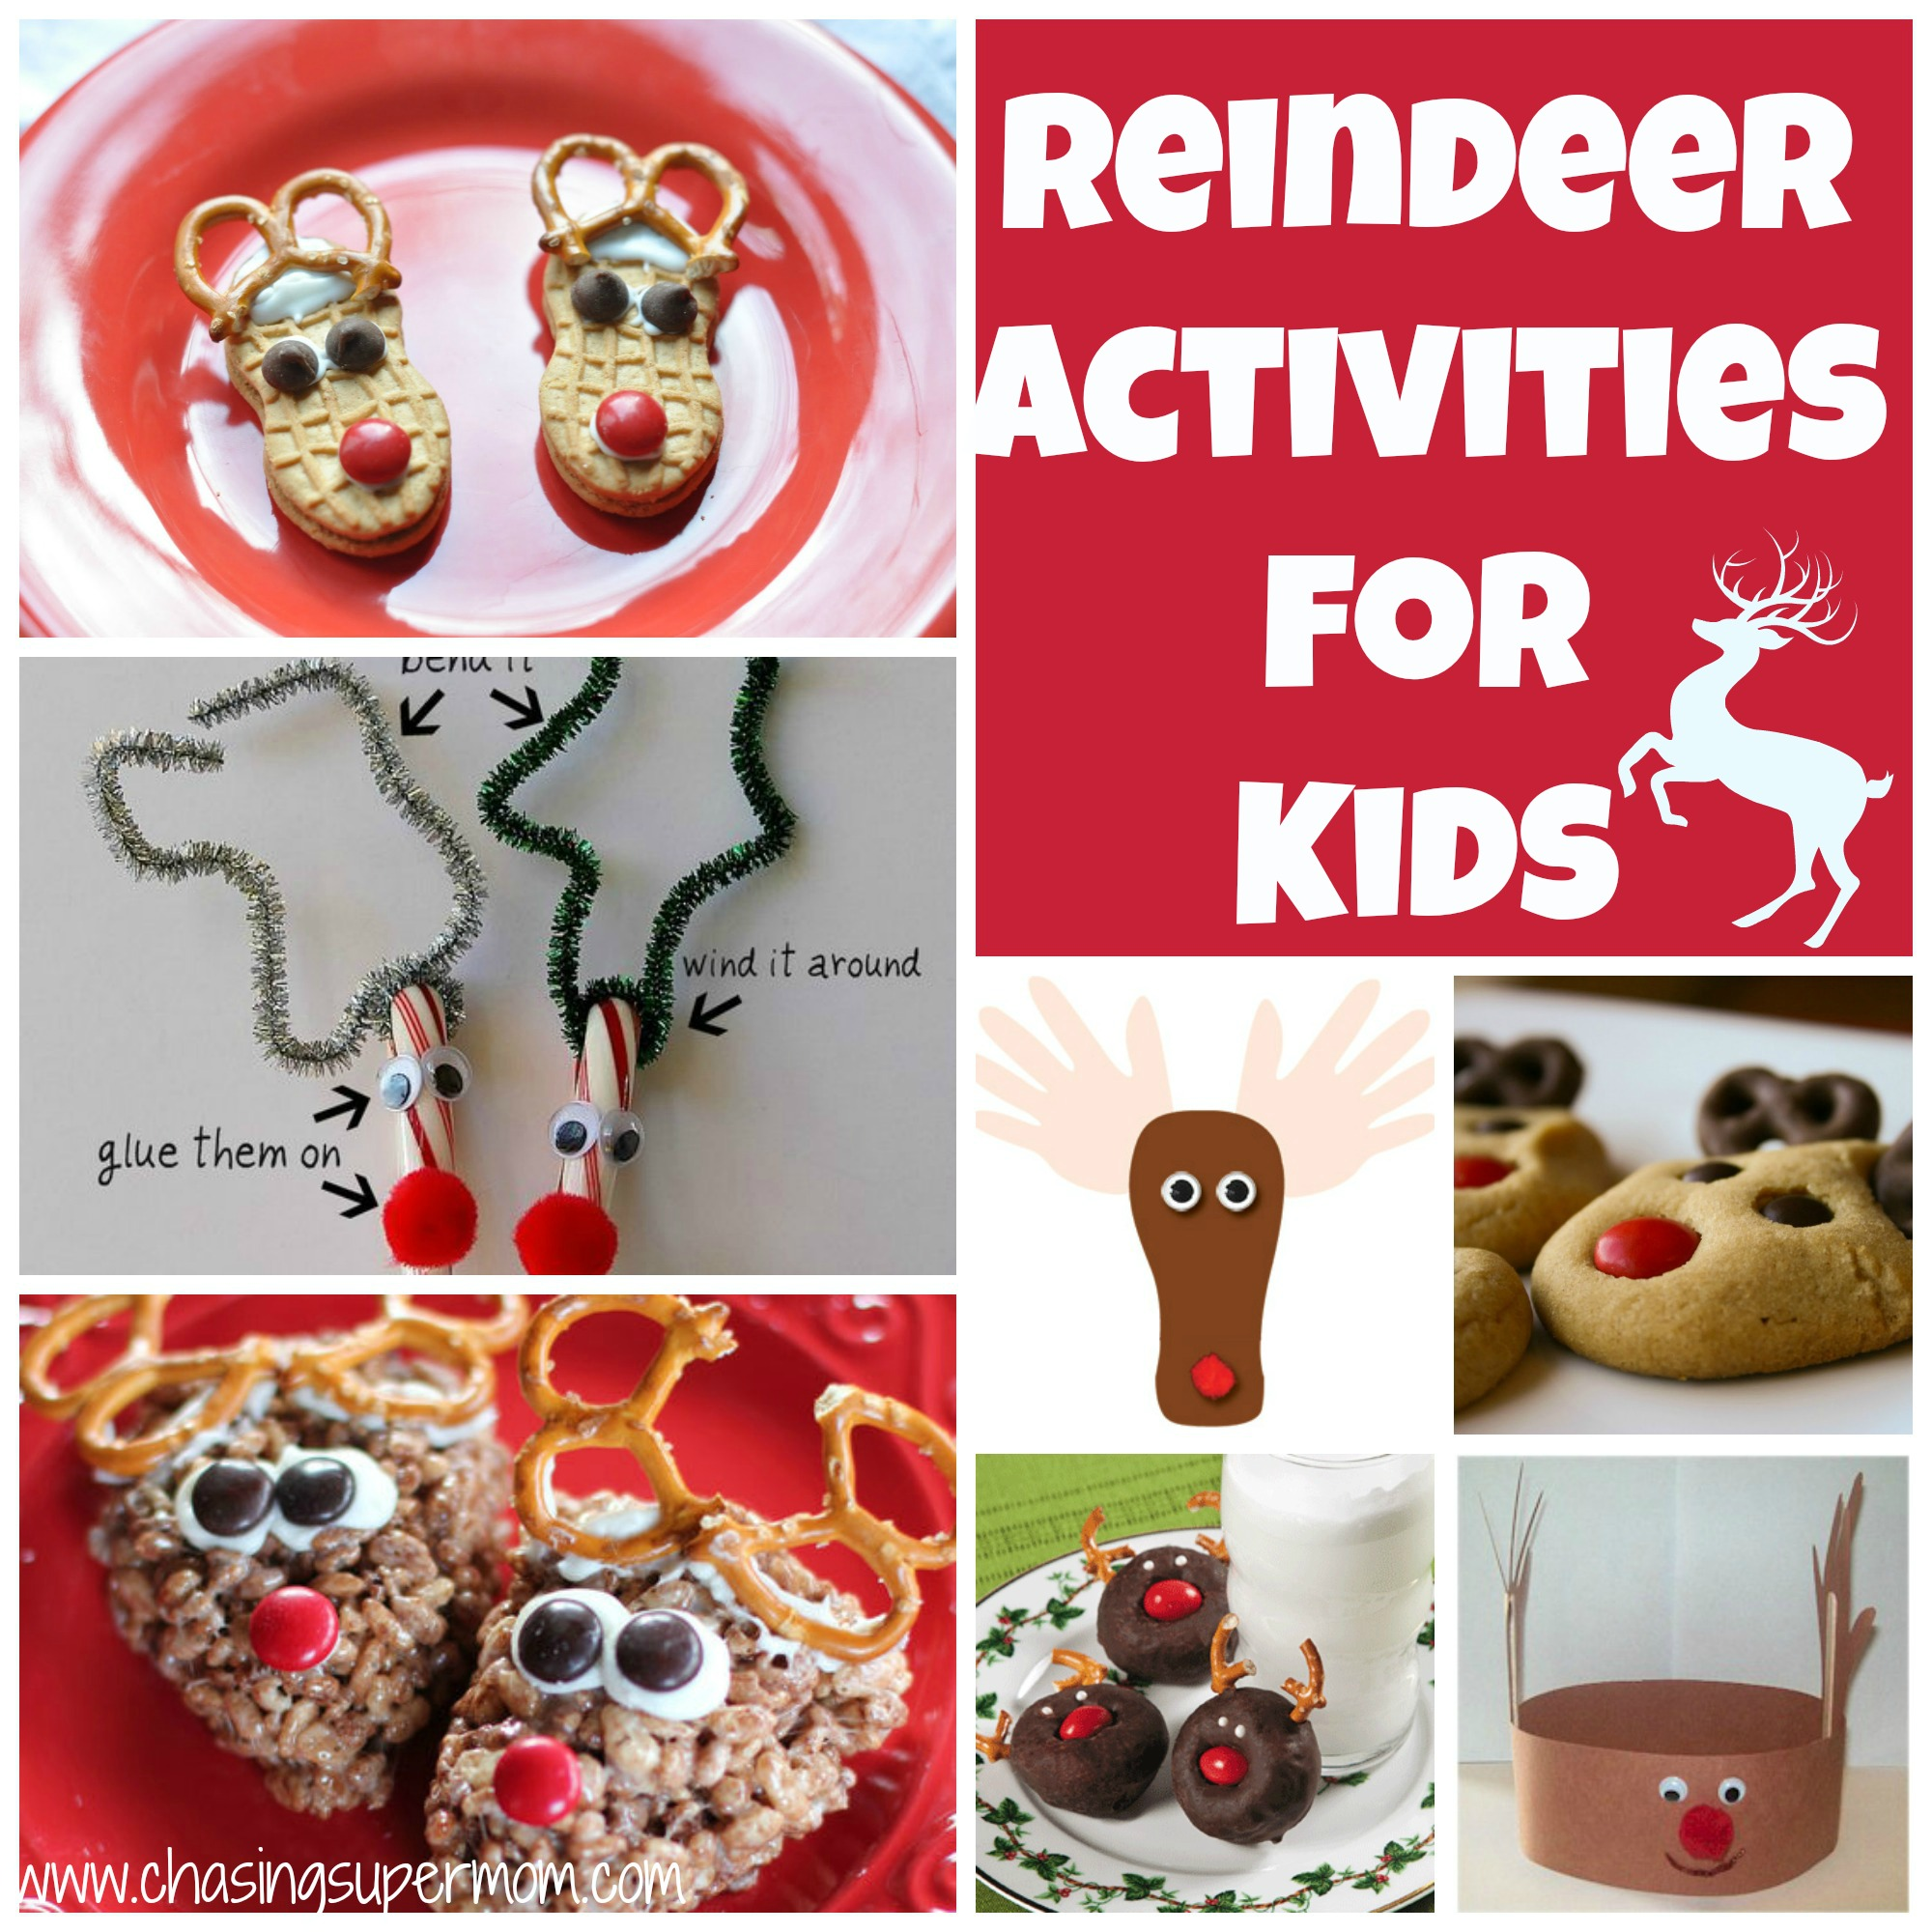 Reindeer Activities For Kids